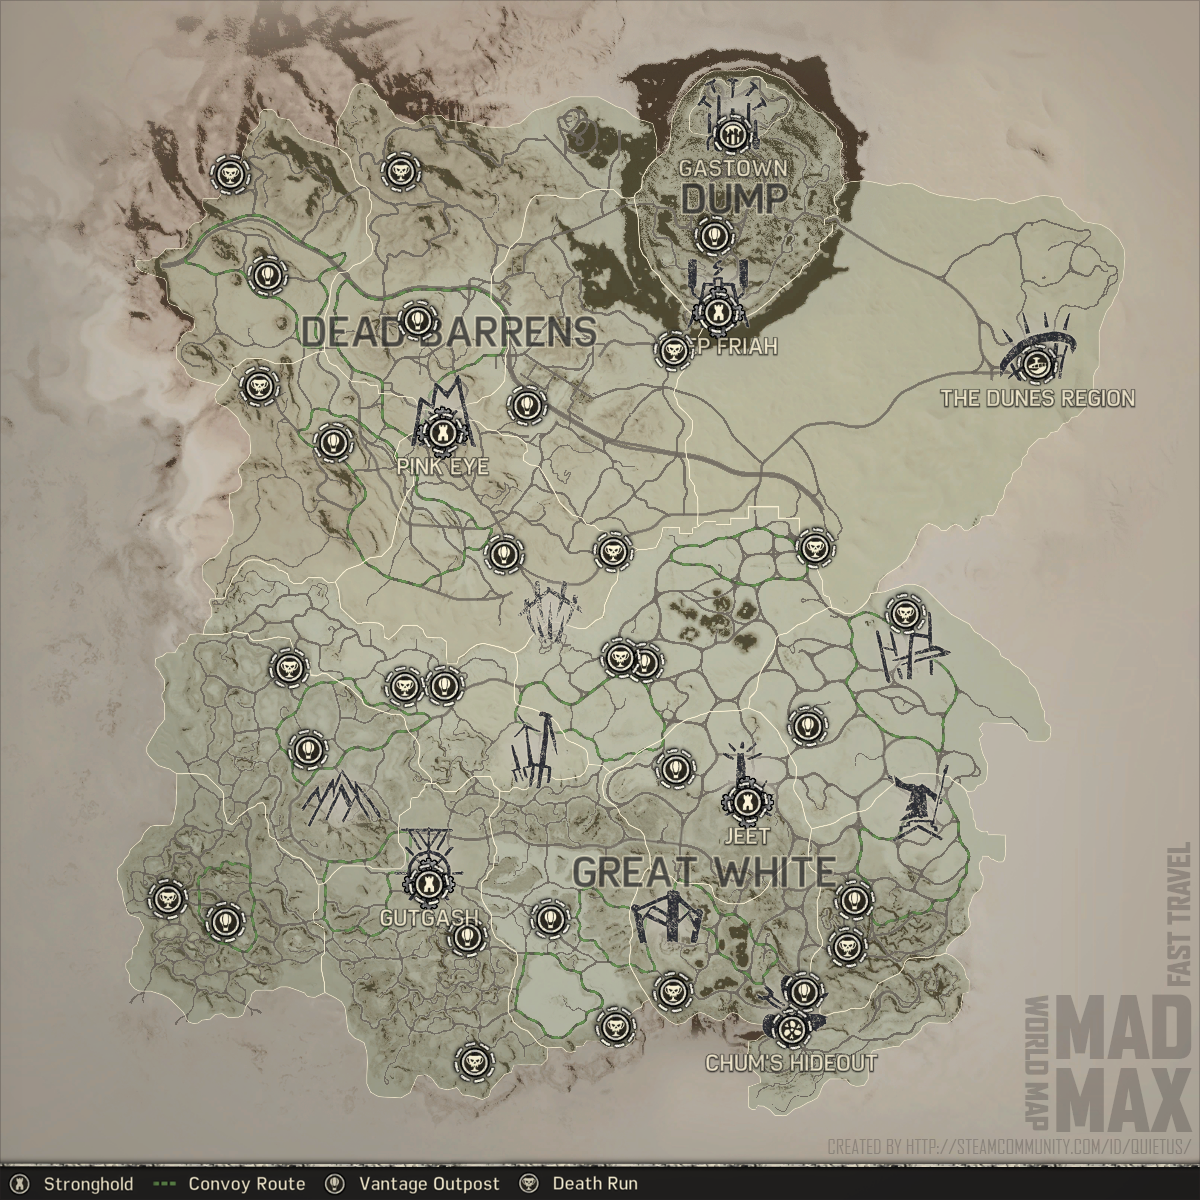 steam community guide world map game guide locations missions vehicles etc